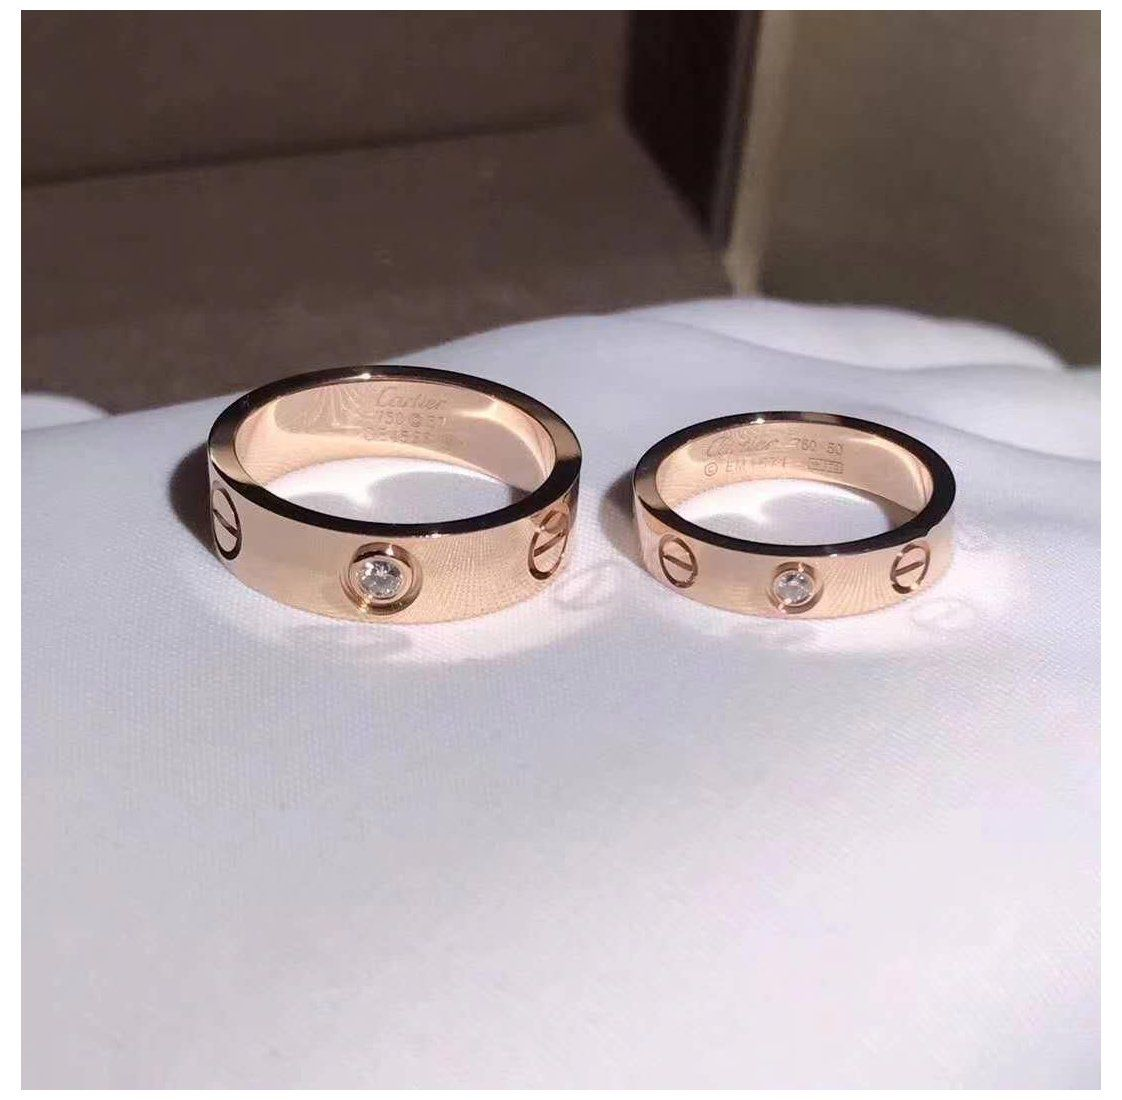 Cartier Love Ring Cartier Love Band Couples Band Cartier Love Ring With Diamond Band Love R In 2020 Cartier Love Ring Cartier Wedding Bands Cartier Wedding Rings